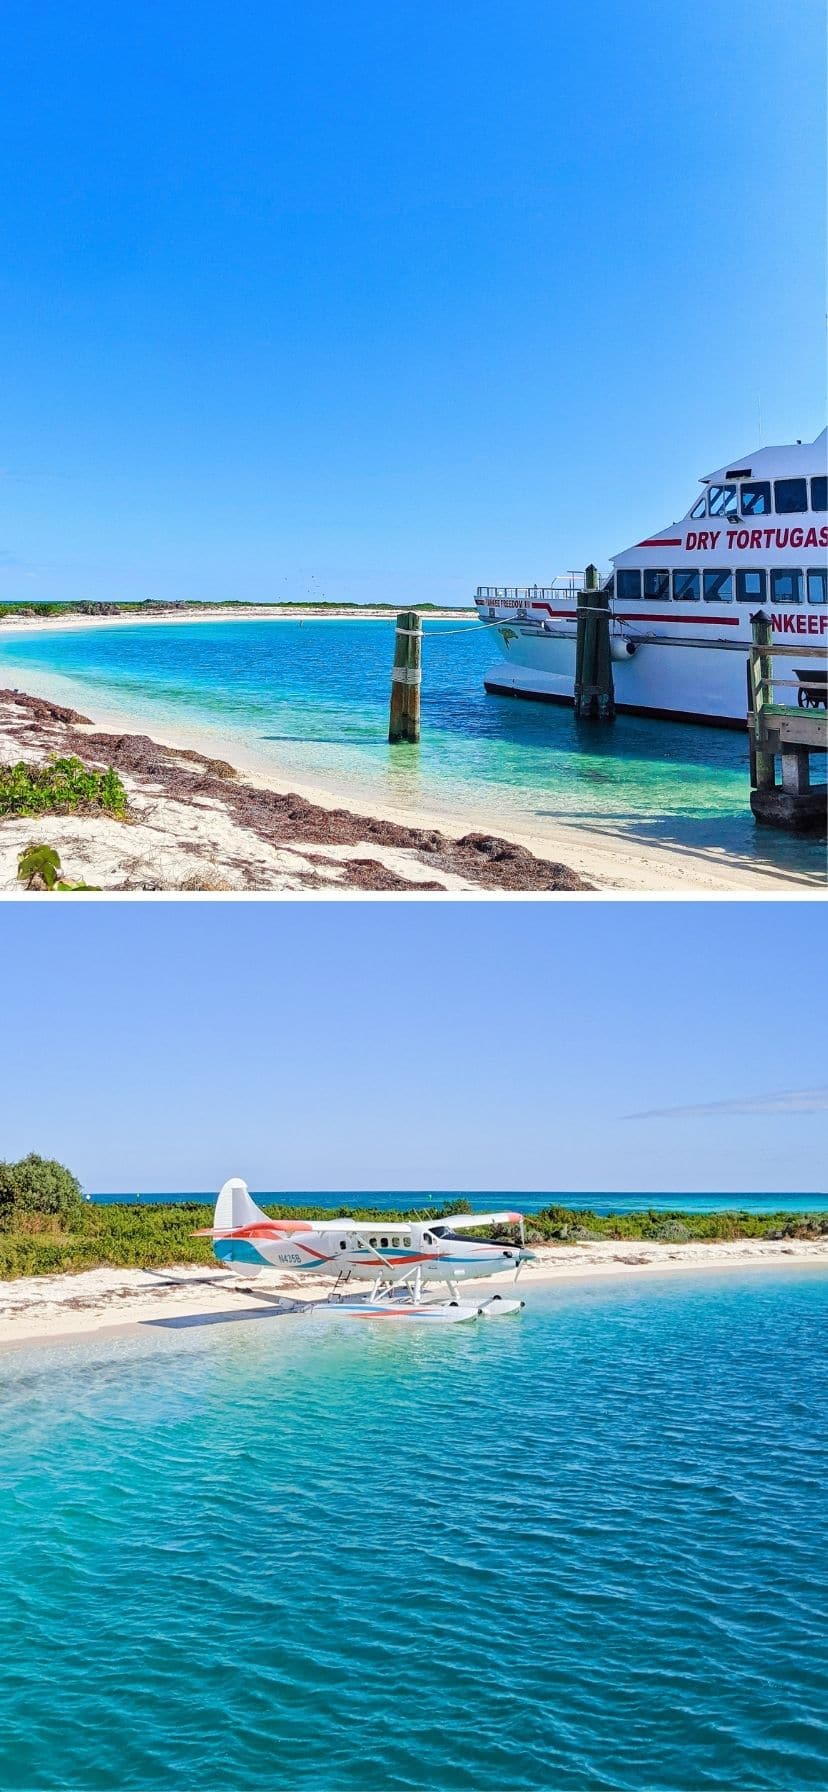 Ferry and seaplane to Dry Tortugas National Park, Florida Keys